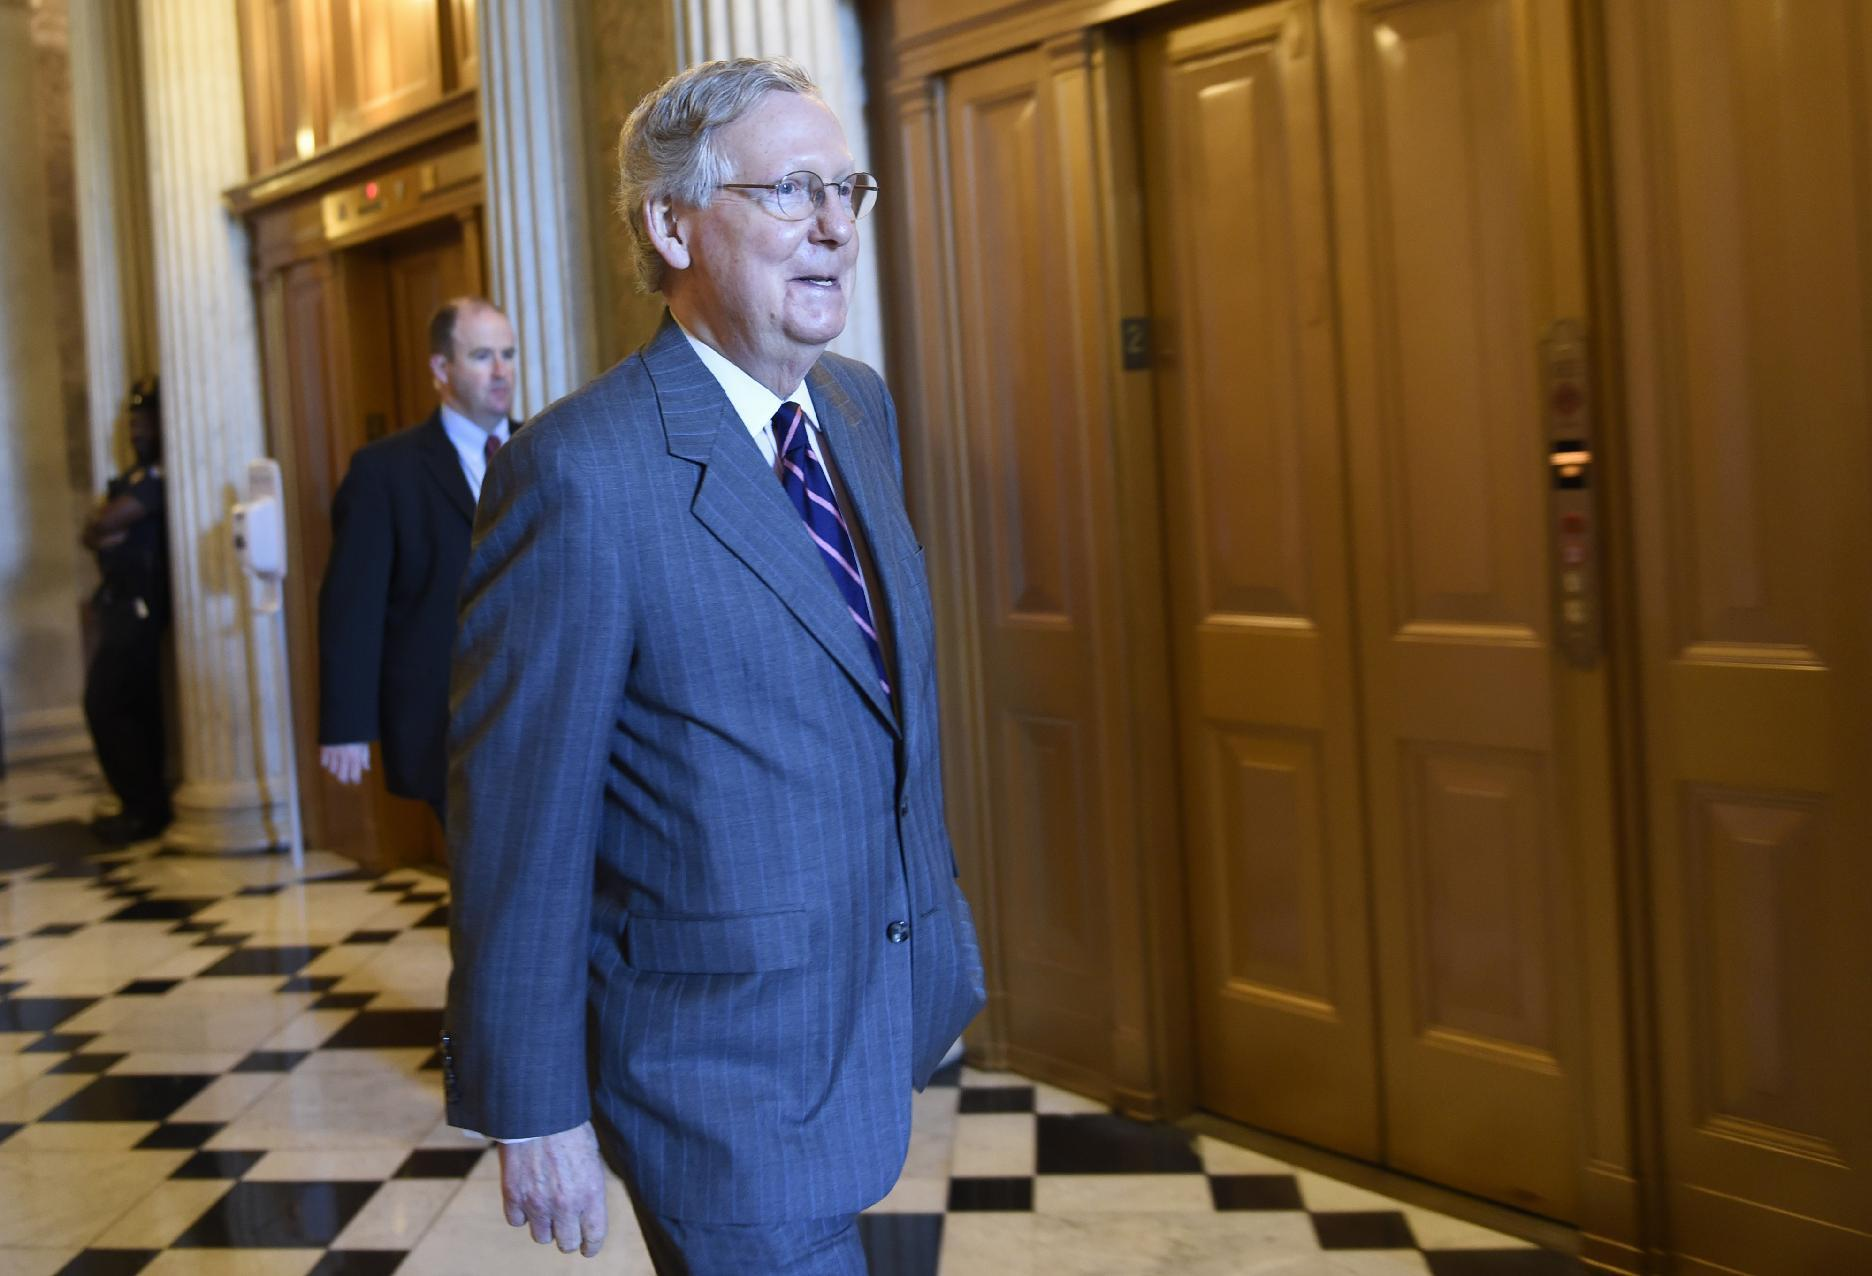 Vacation plans collide with must-do agenda for Senate